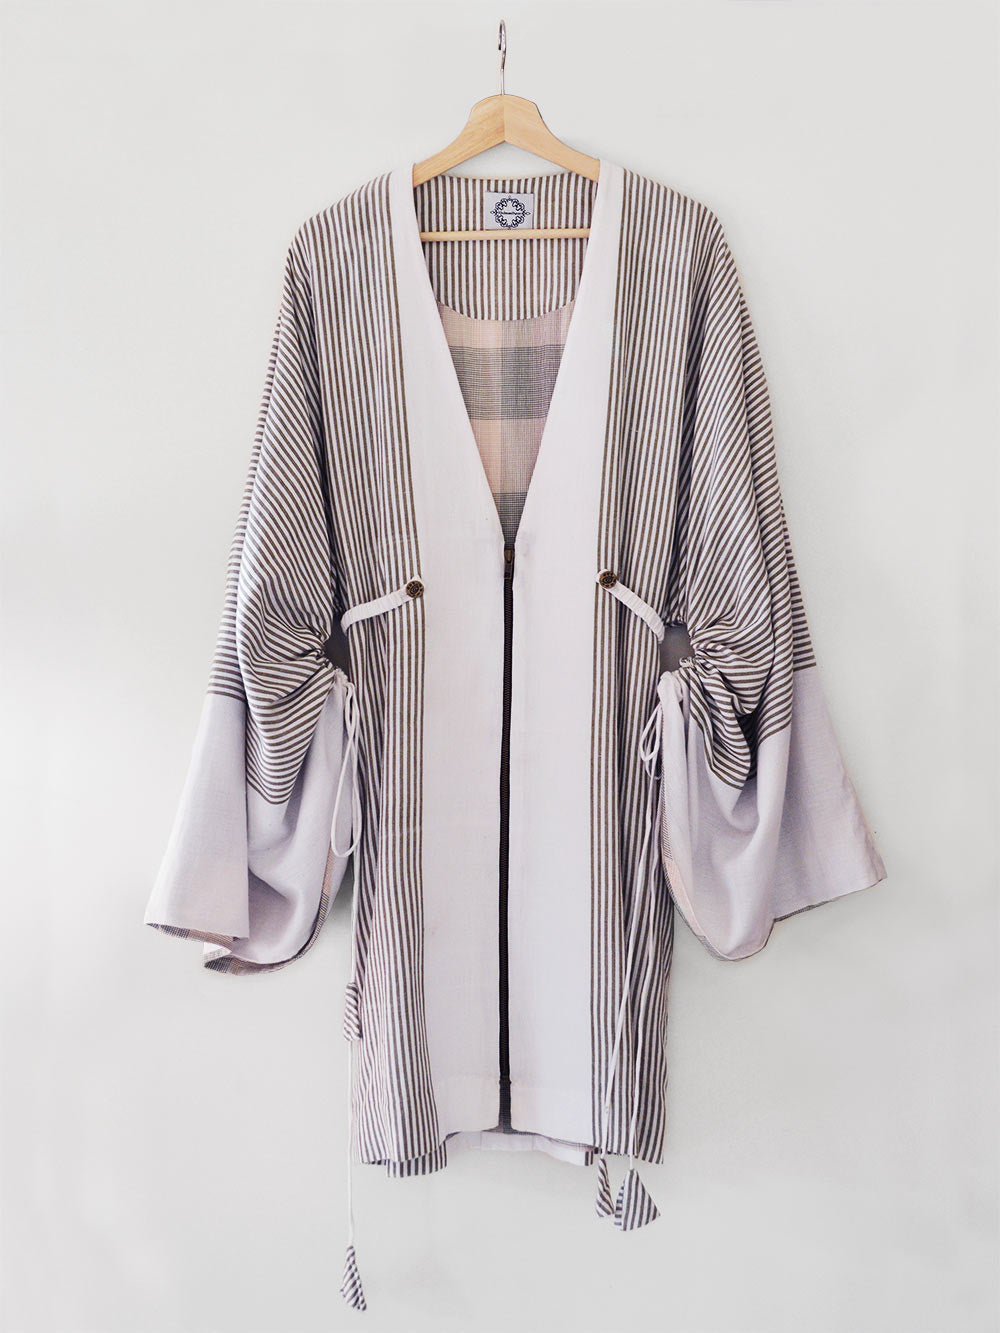 Handwoven Kimono Sleeve Coat, made from cotton, designed by Khumanthem Atelier